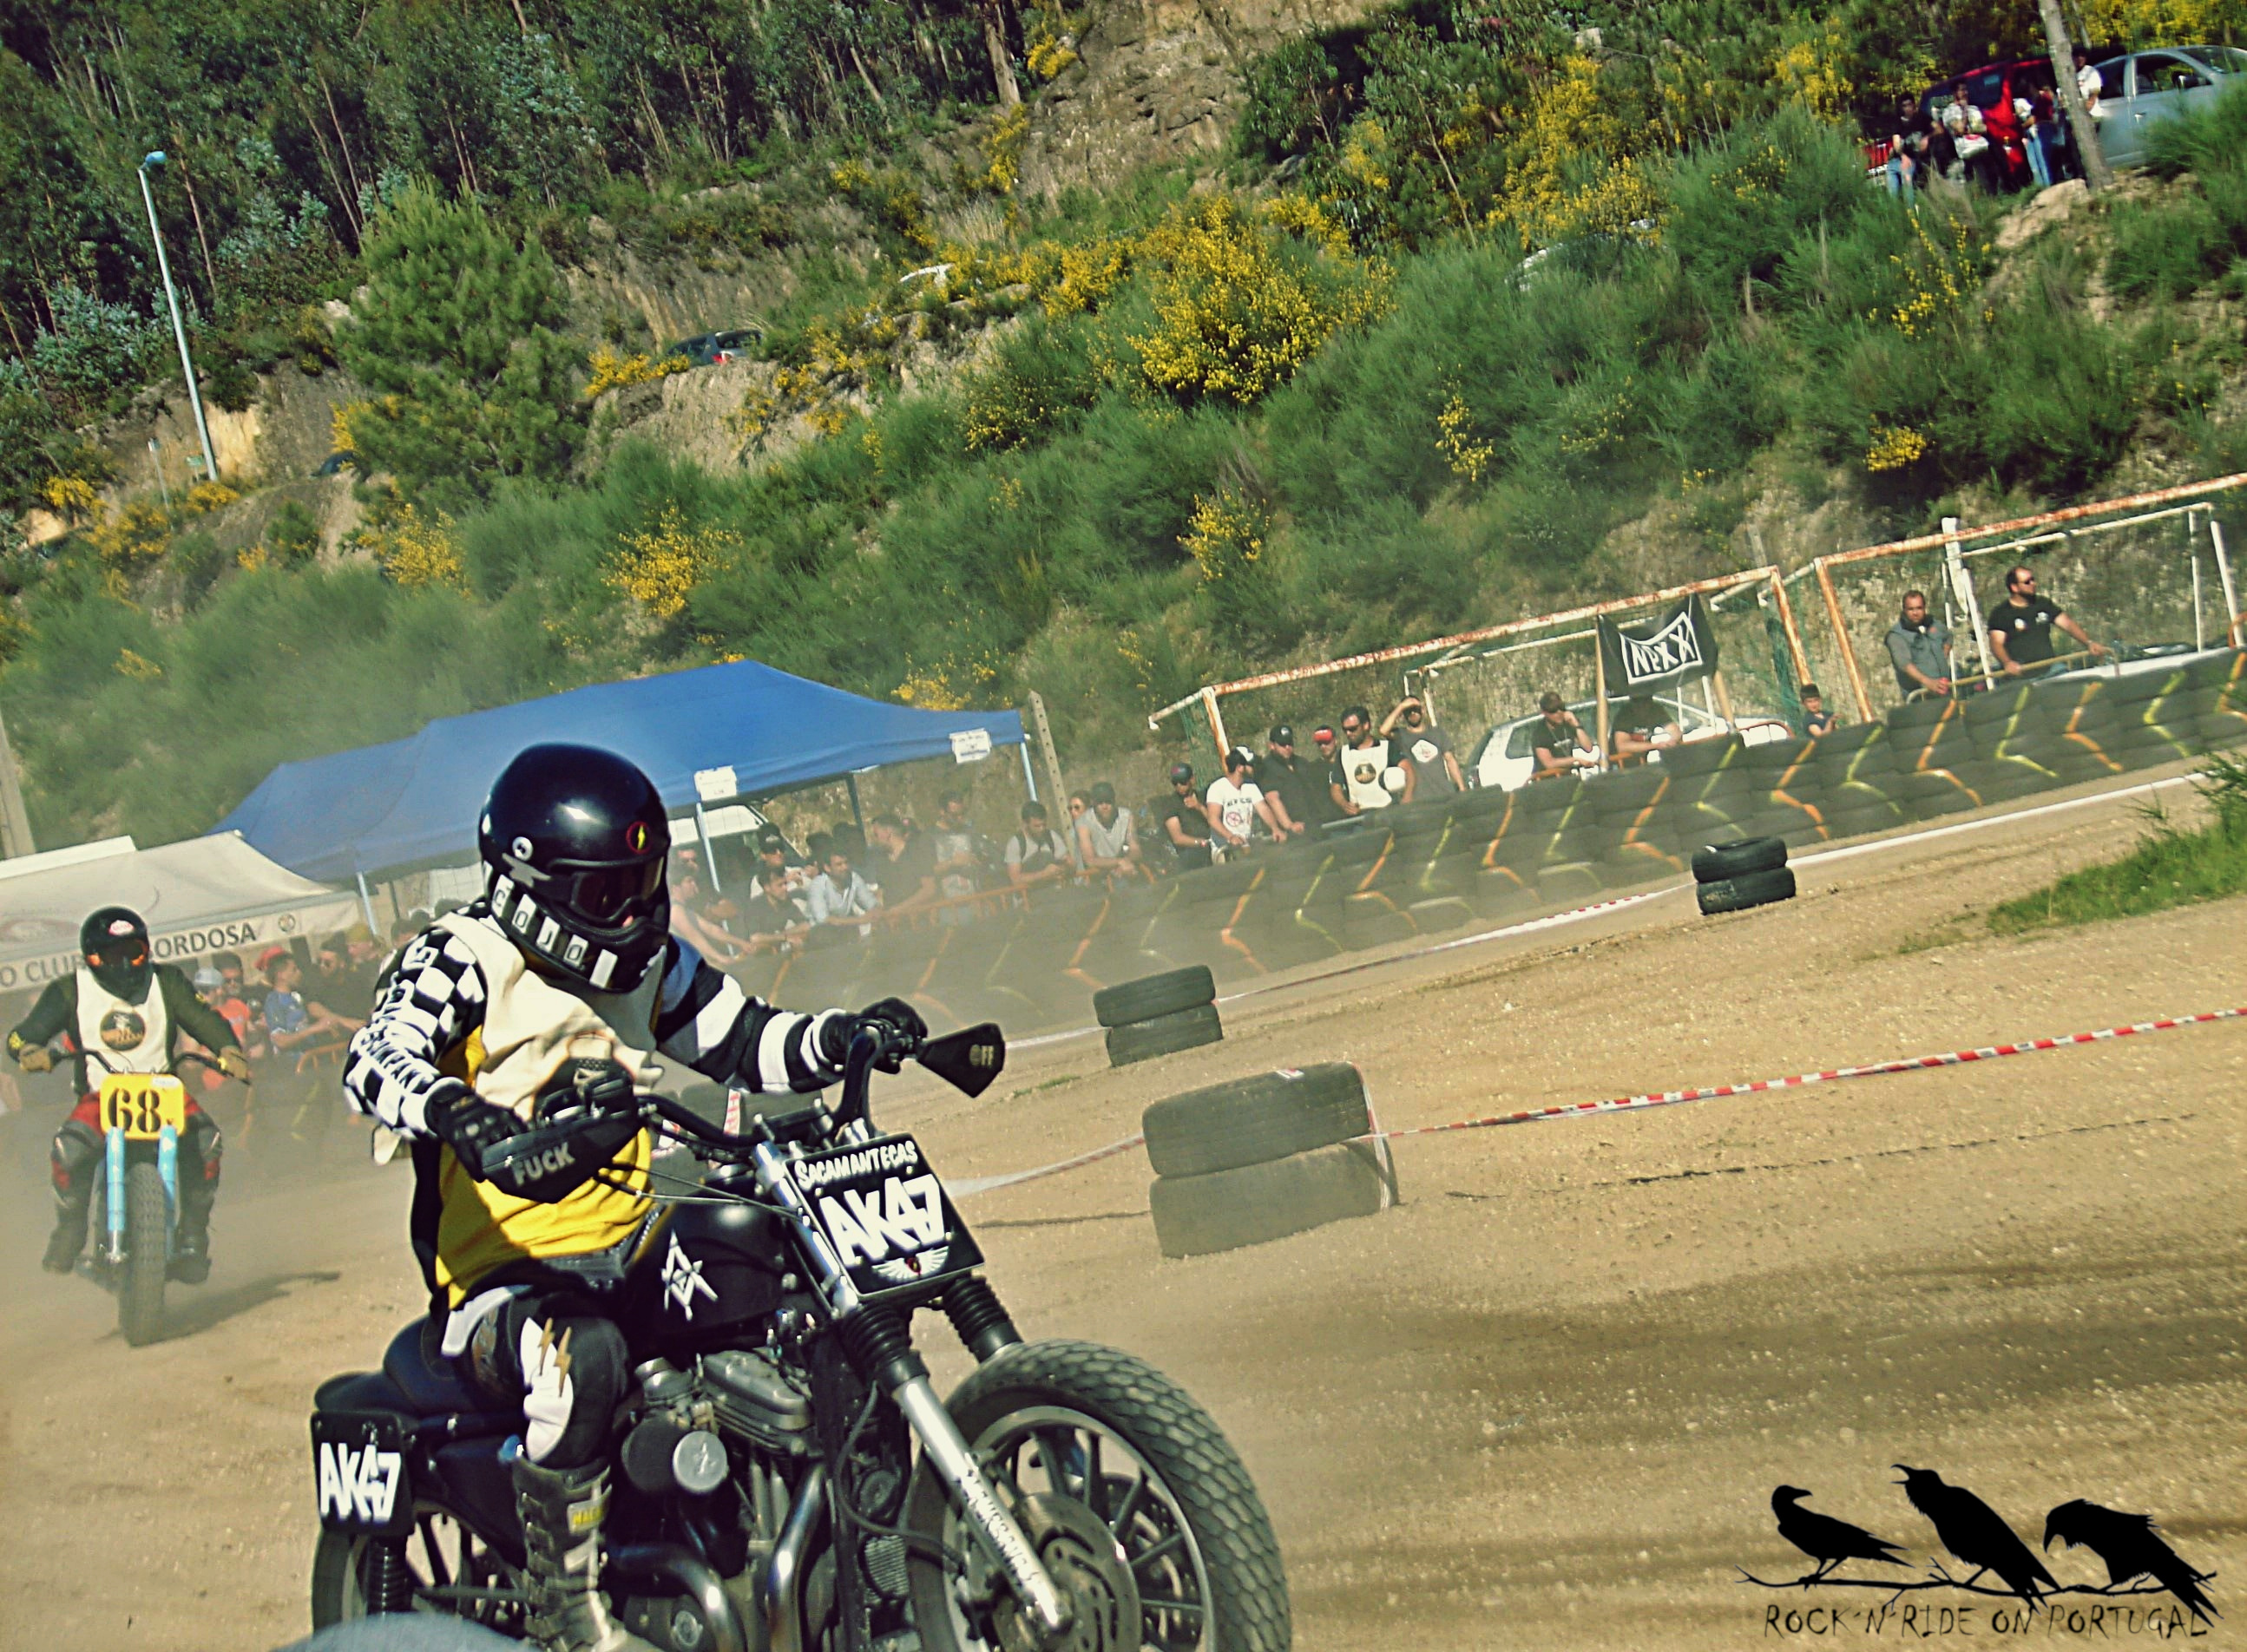 Dusty Track